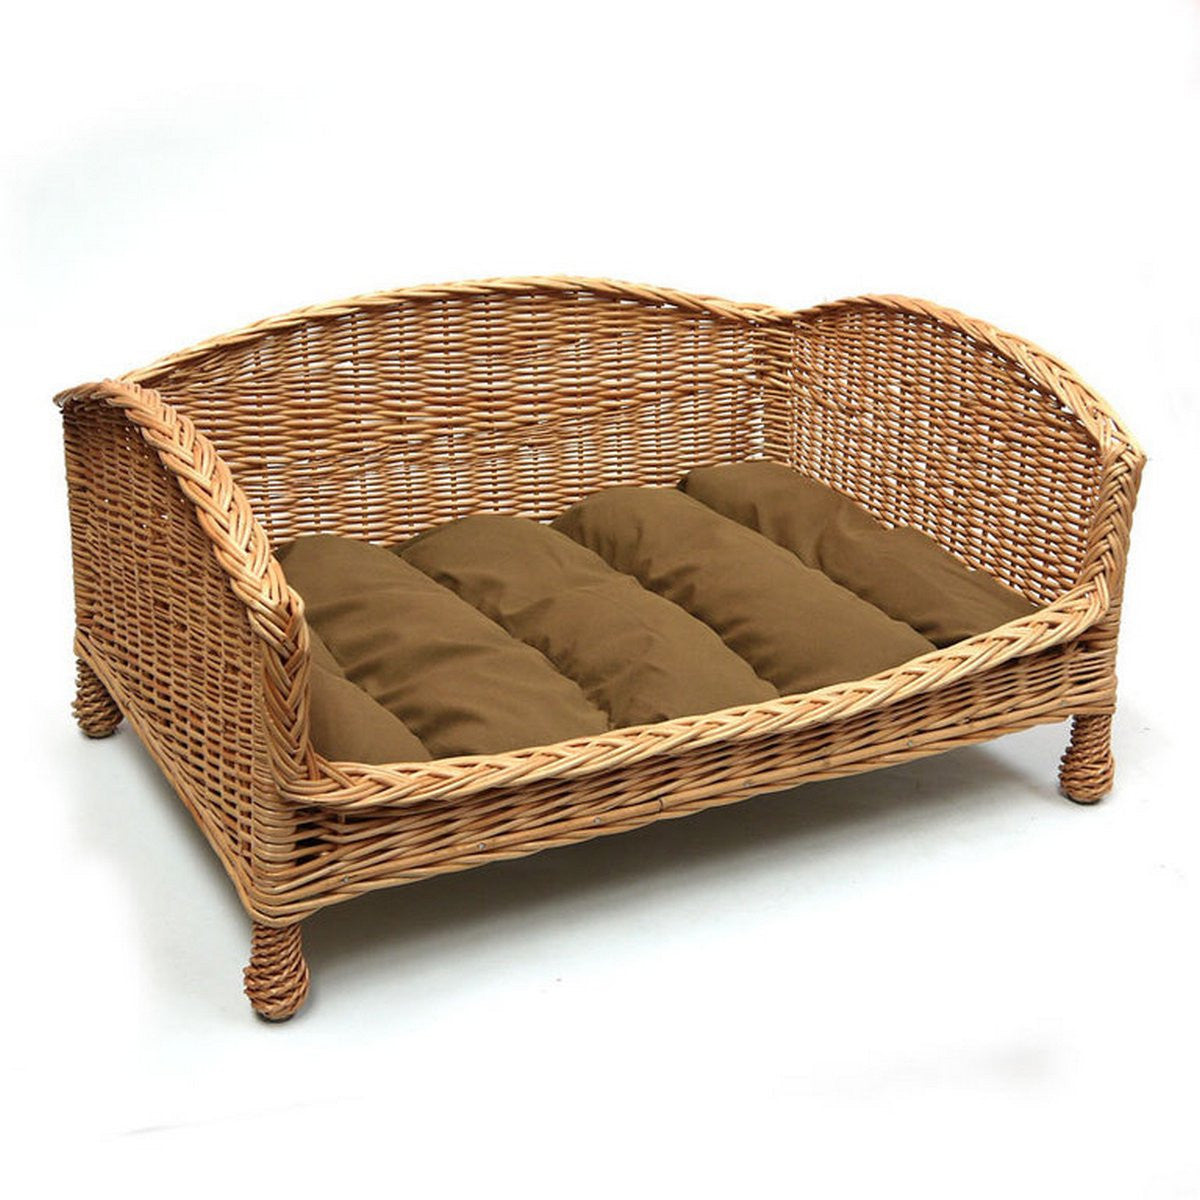 Luxury Wicker And Rattan Dog Bed On Legs Free Uk Delivery Fernie S Choice